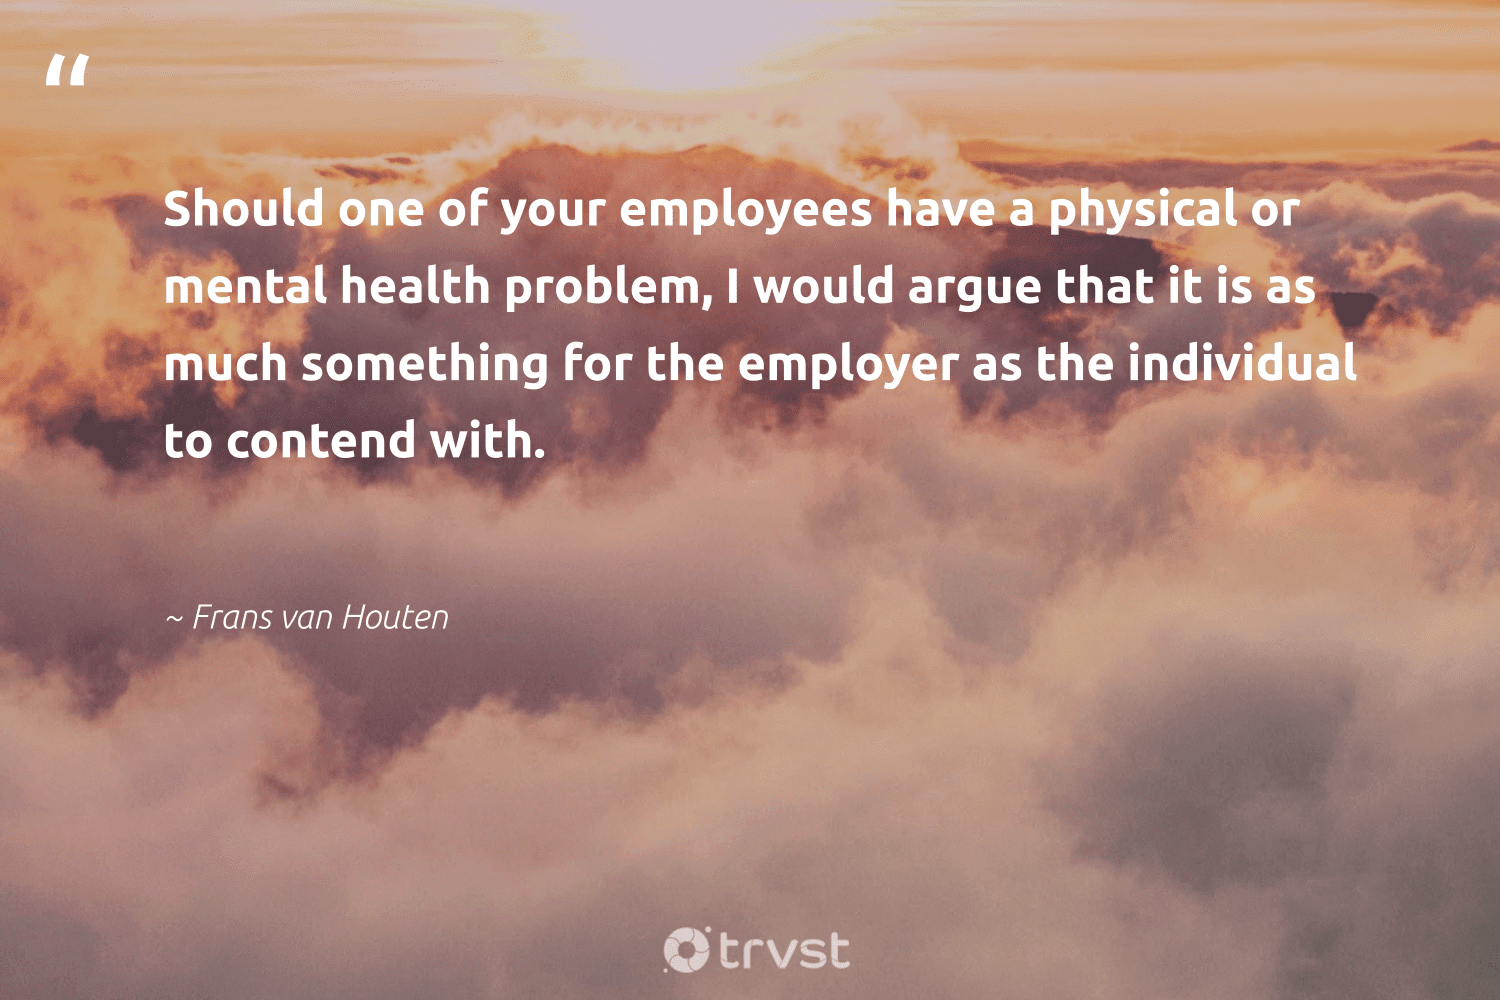 """""""Should one of your employees have a physical or mental health problem, I would argue that it is as much something for the employer as the individual to contend with.""""  - Frans van Houten #trvst #quotes #mentalhealth #health #mentalhealthmatters #begreat #changemakers #bethechange #mentalhealthawareness #nevergiveup #togetherwecan #dosomething"""